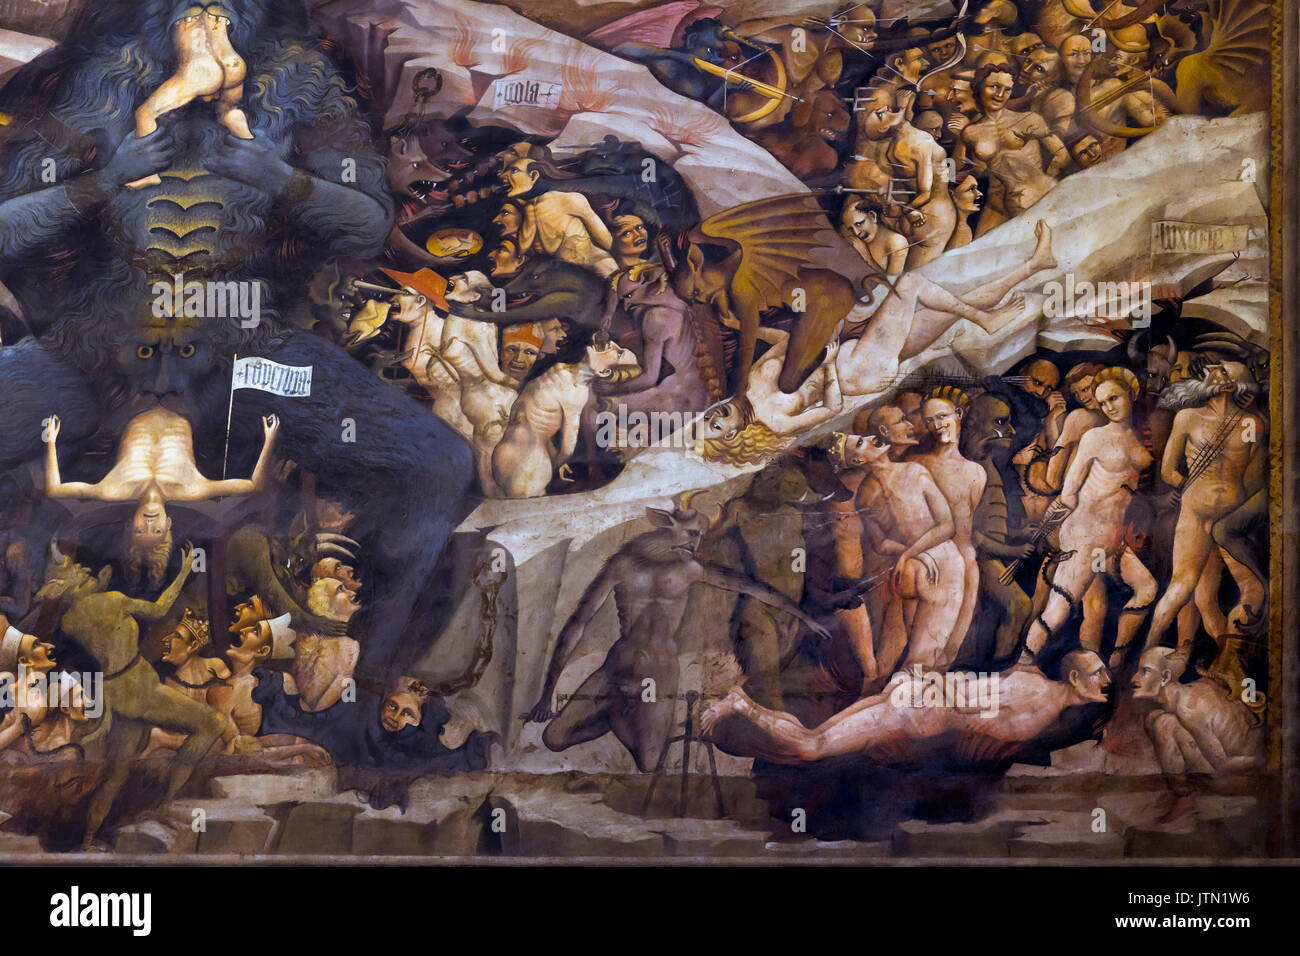 Lucifer Eating Sinners, Heaven and Hell fresco, Cappella Bolognini, Chapel of the Magi, by Giovanni da Modena, 1410, inspired by Dante's Divine Comedy - Stock Image